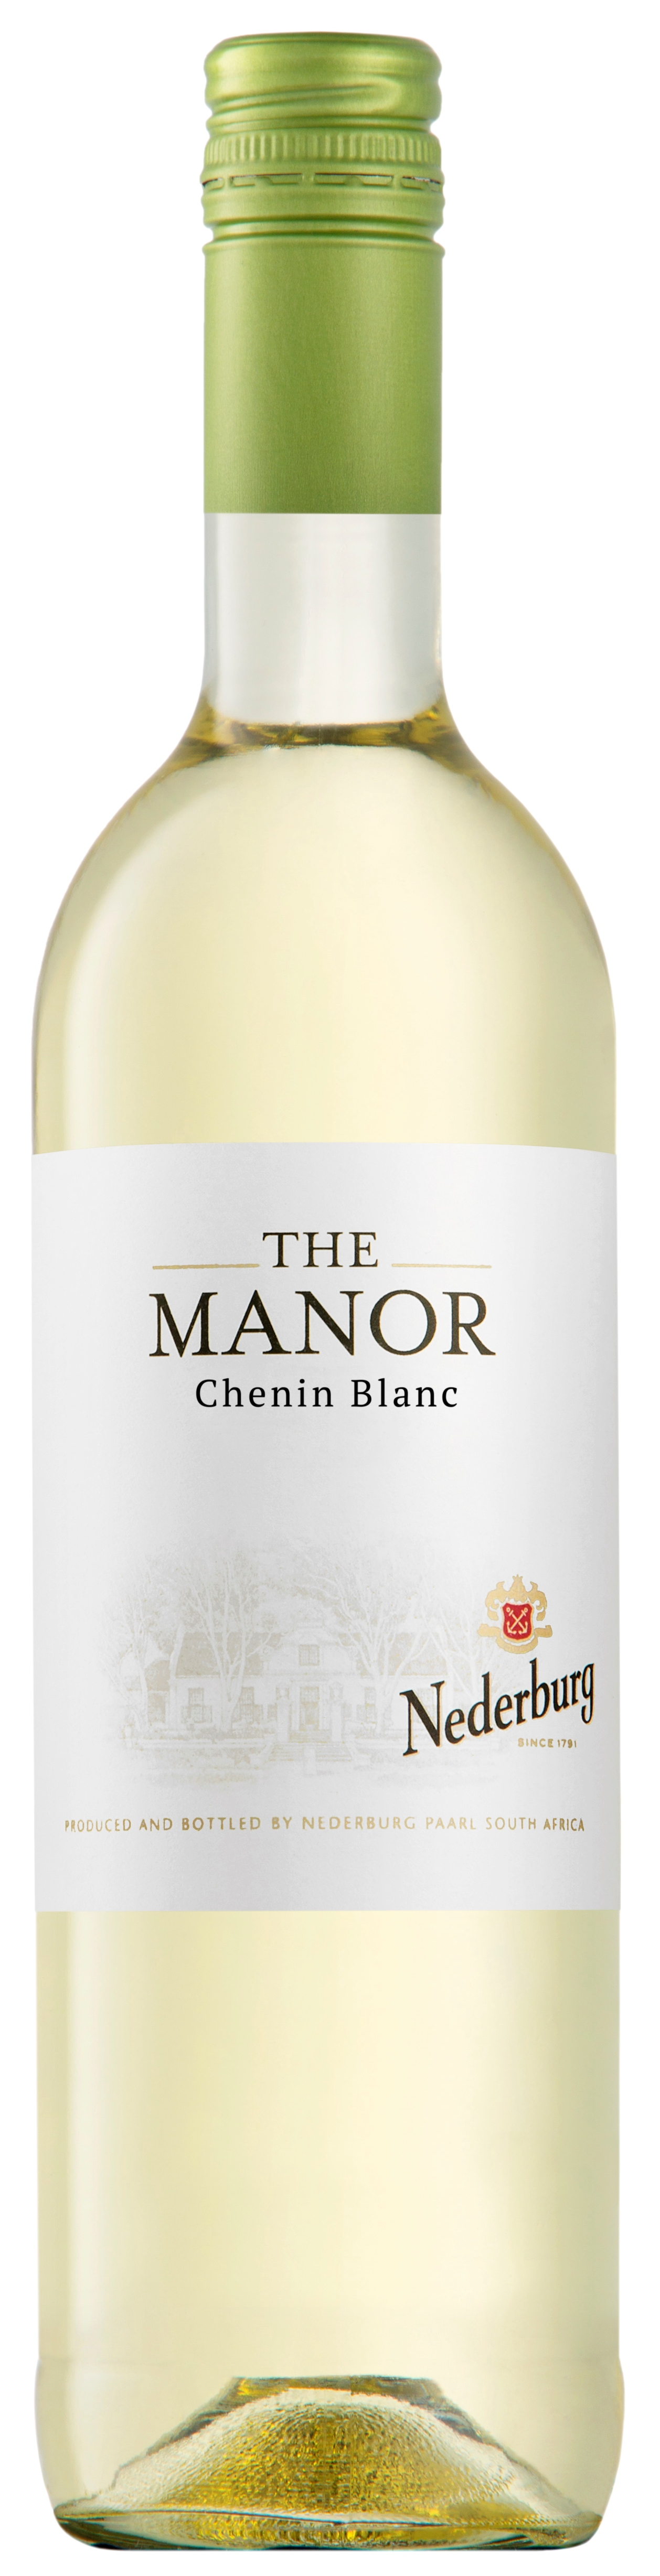 Nederburg The Manor, Chenin Blanc